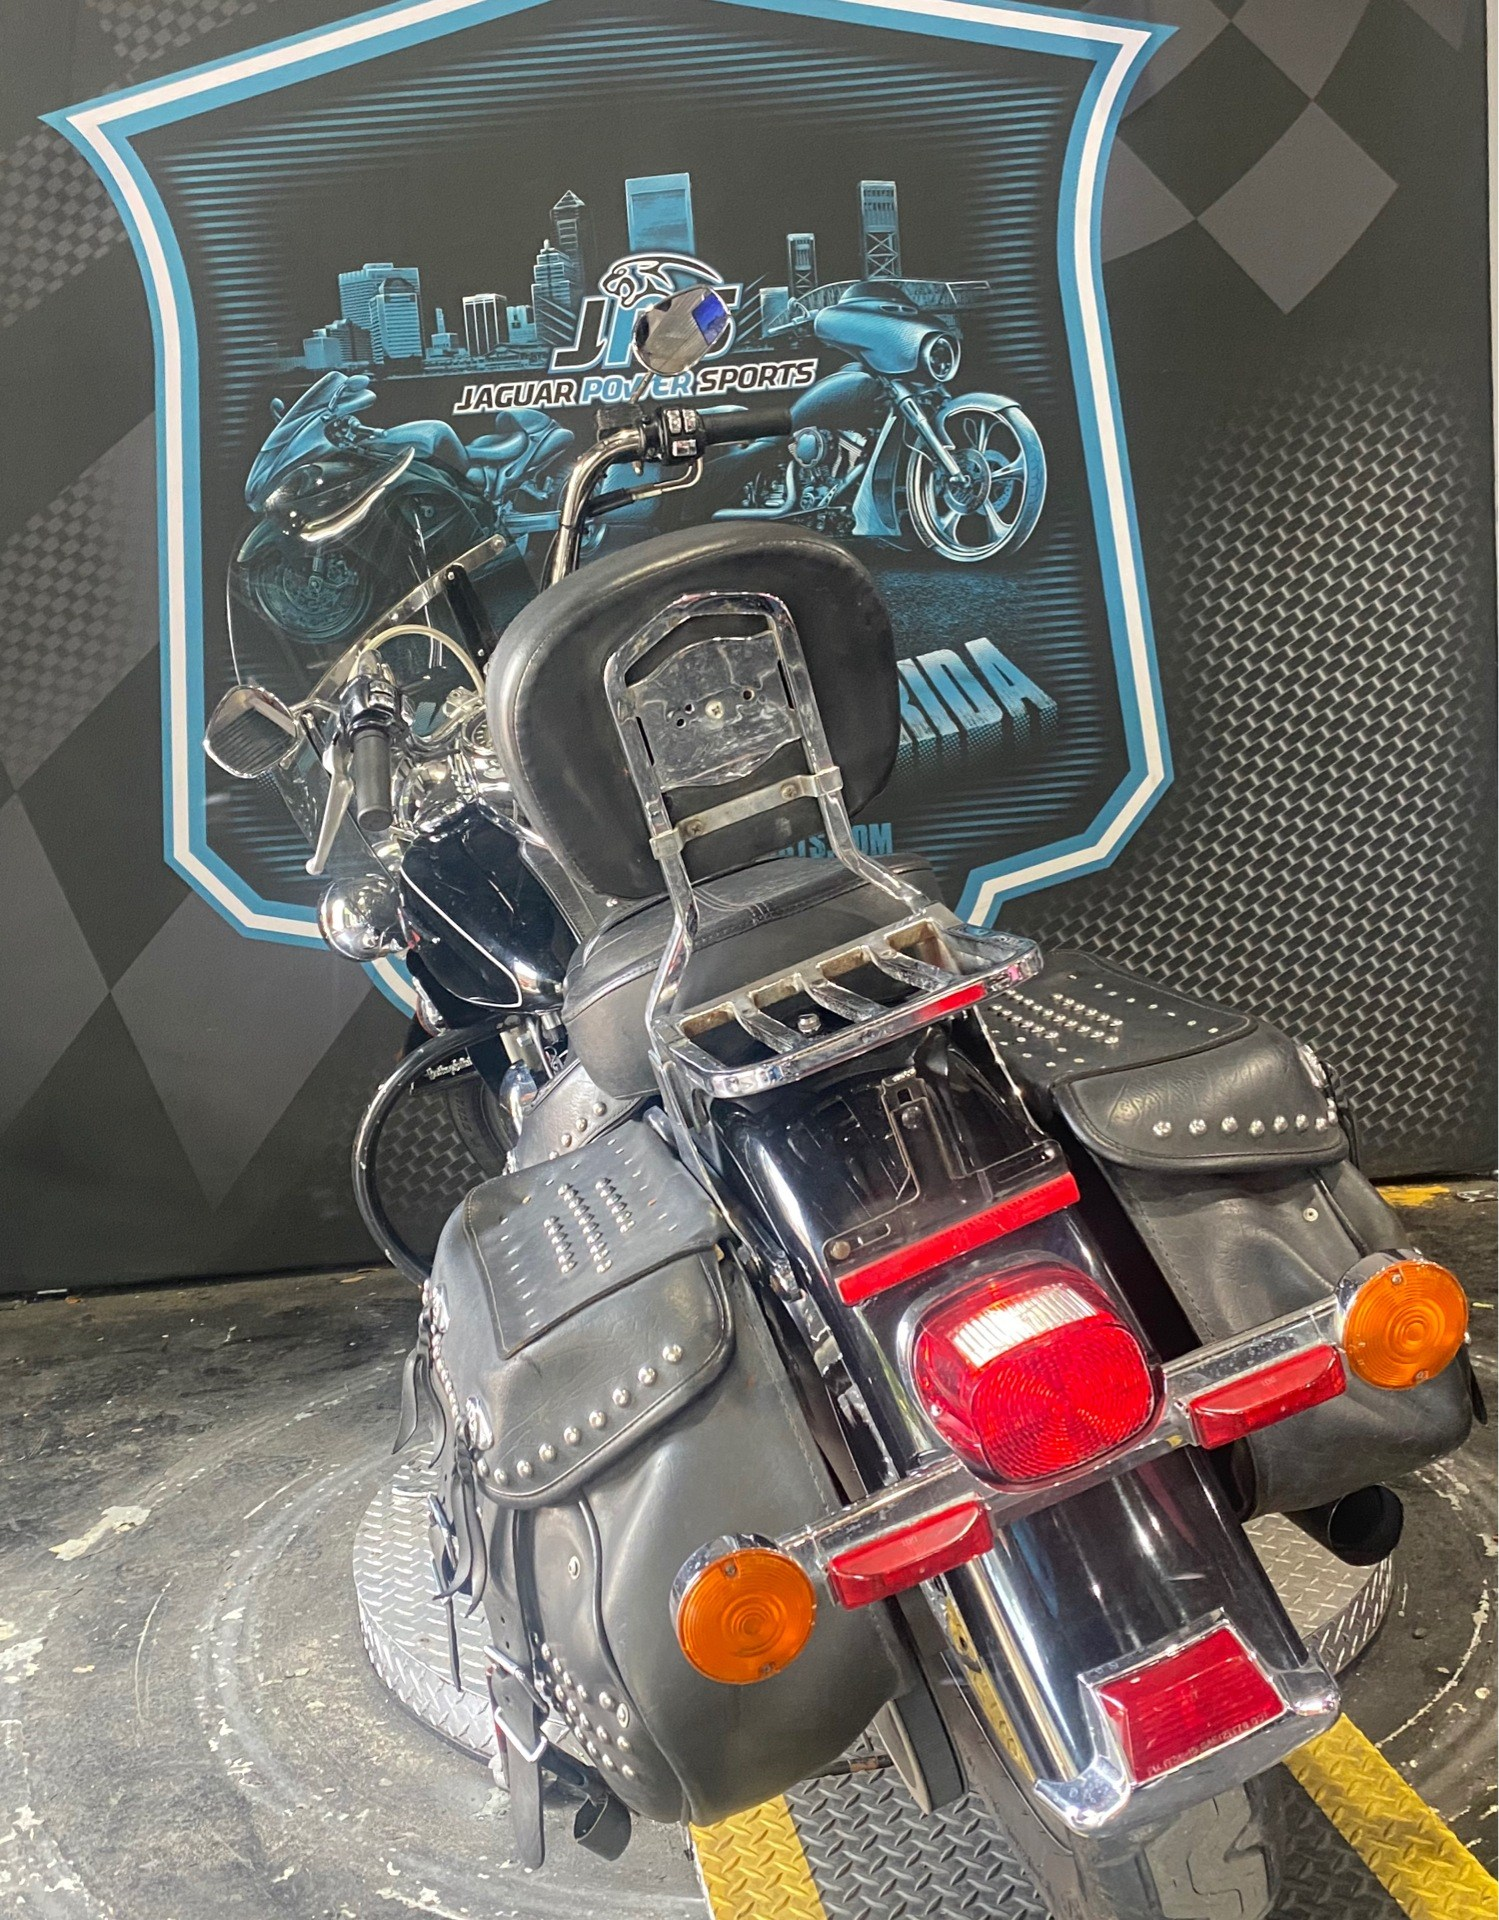 2014 Harley-Davidson Heritage Softail® Classic in Jacksonville, Florida - Photo 8